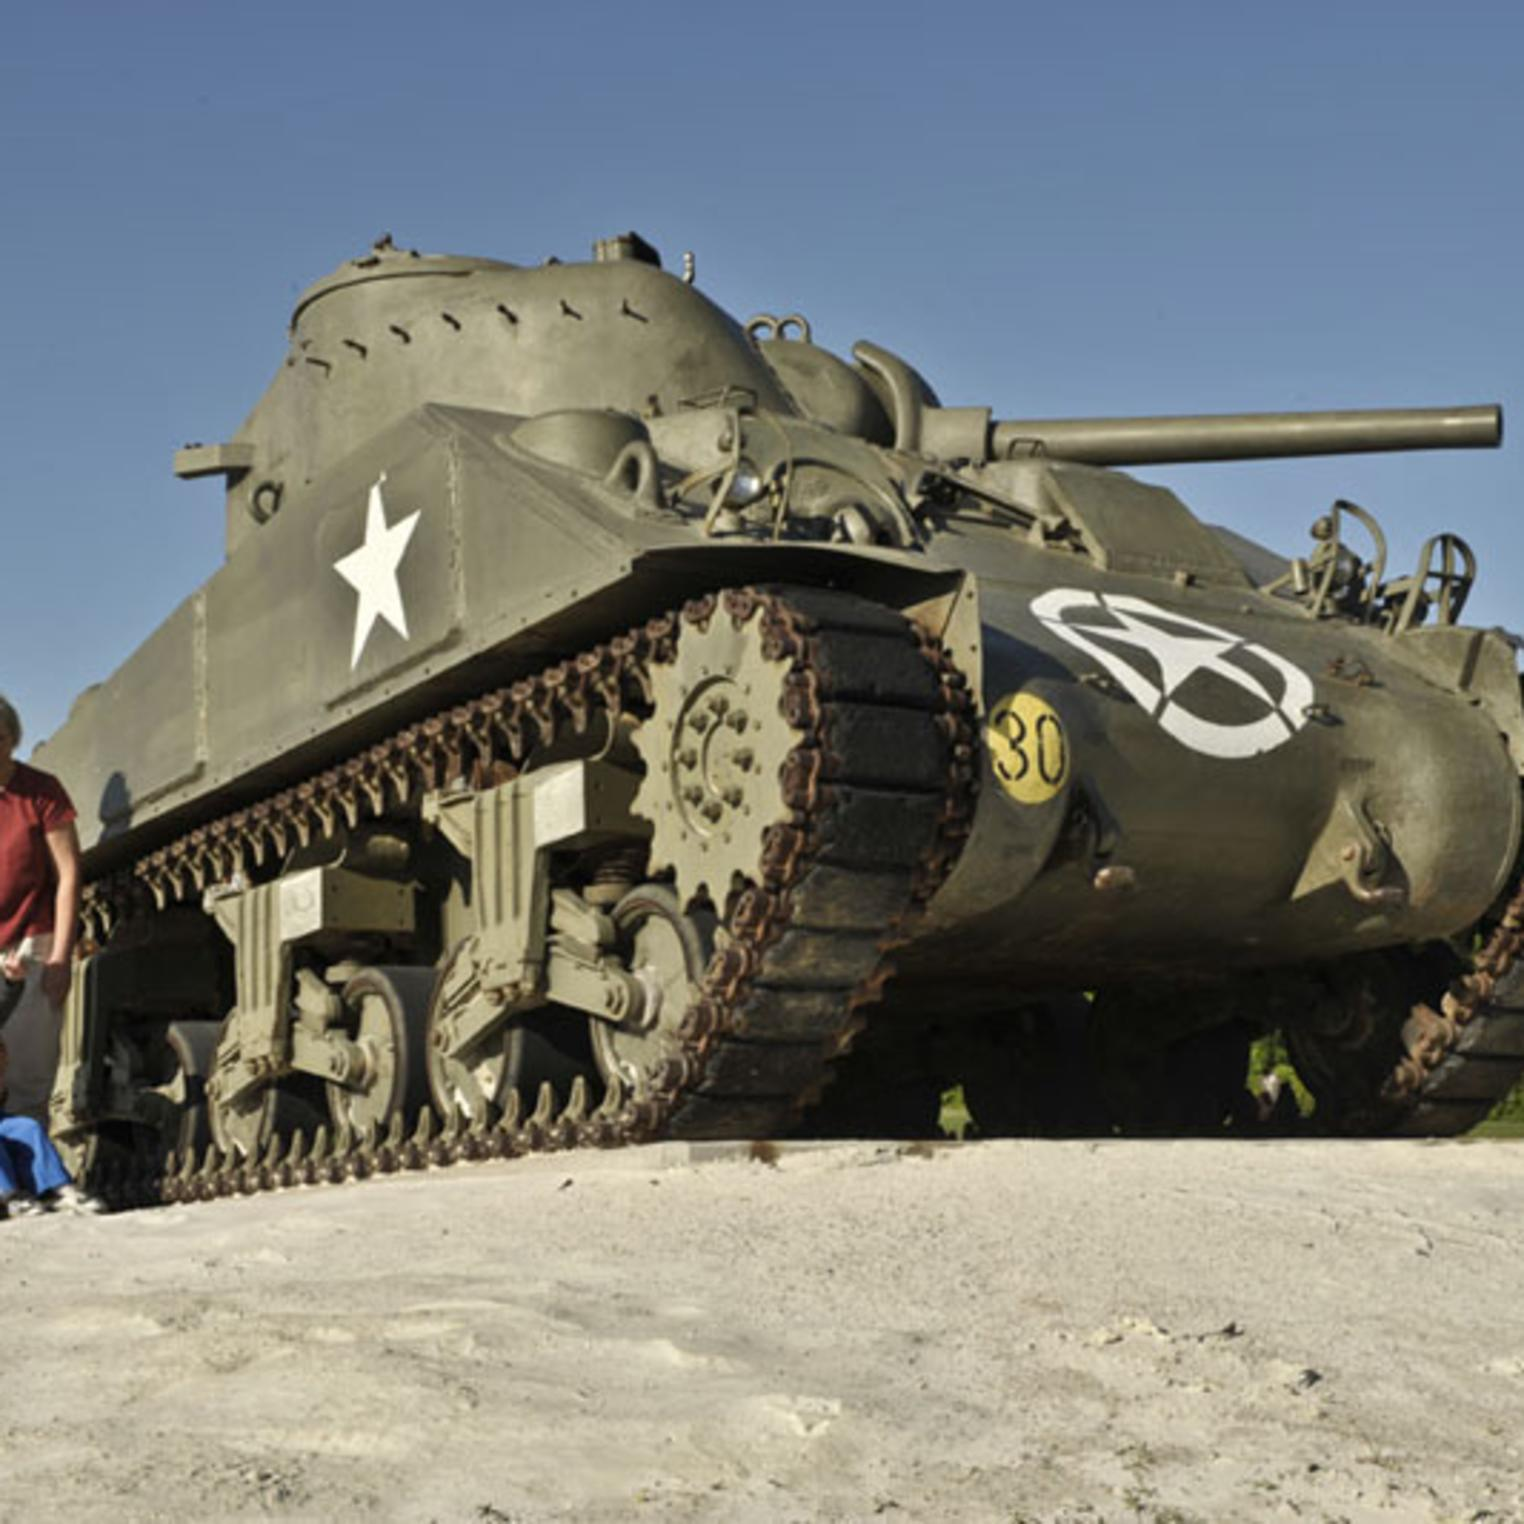 Tank at U.S. Army Heritage & Education Center